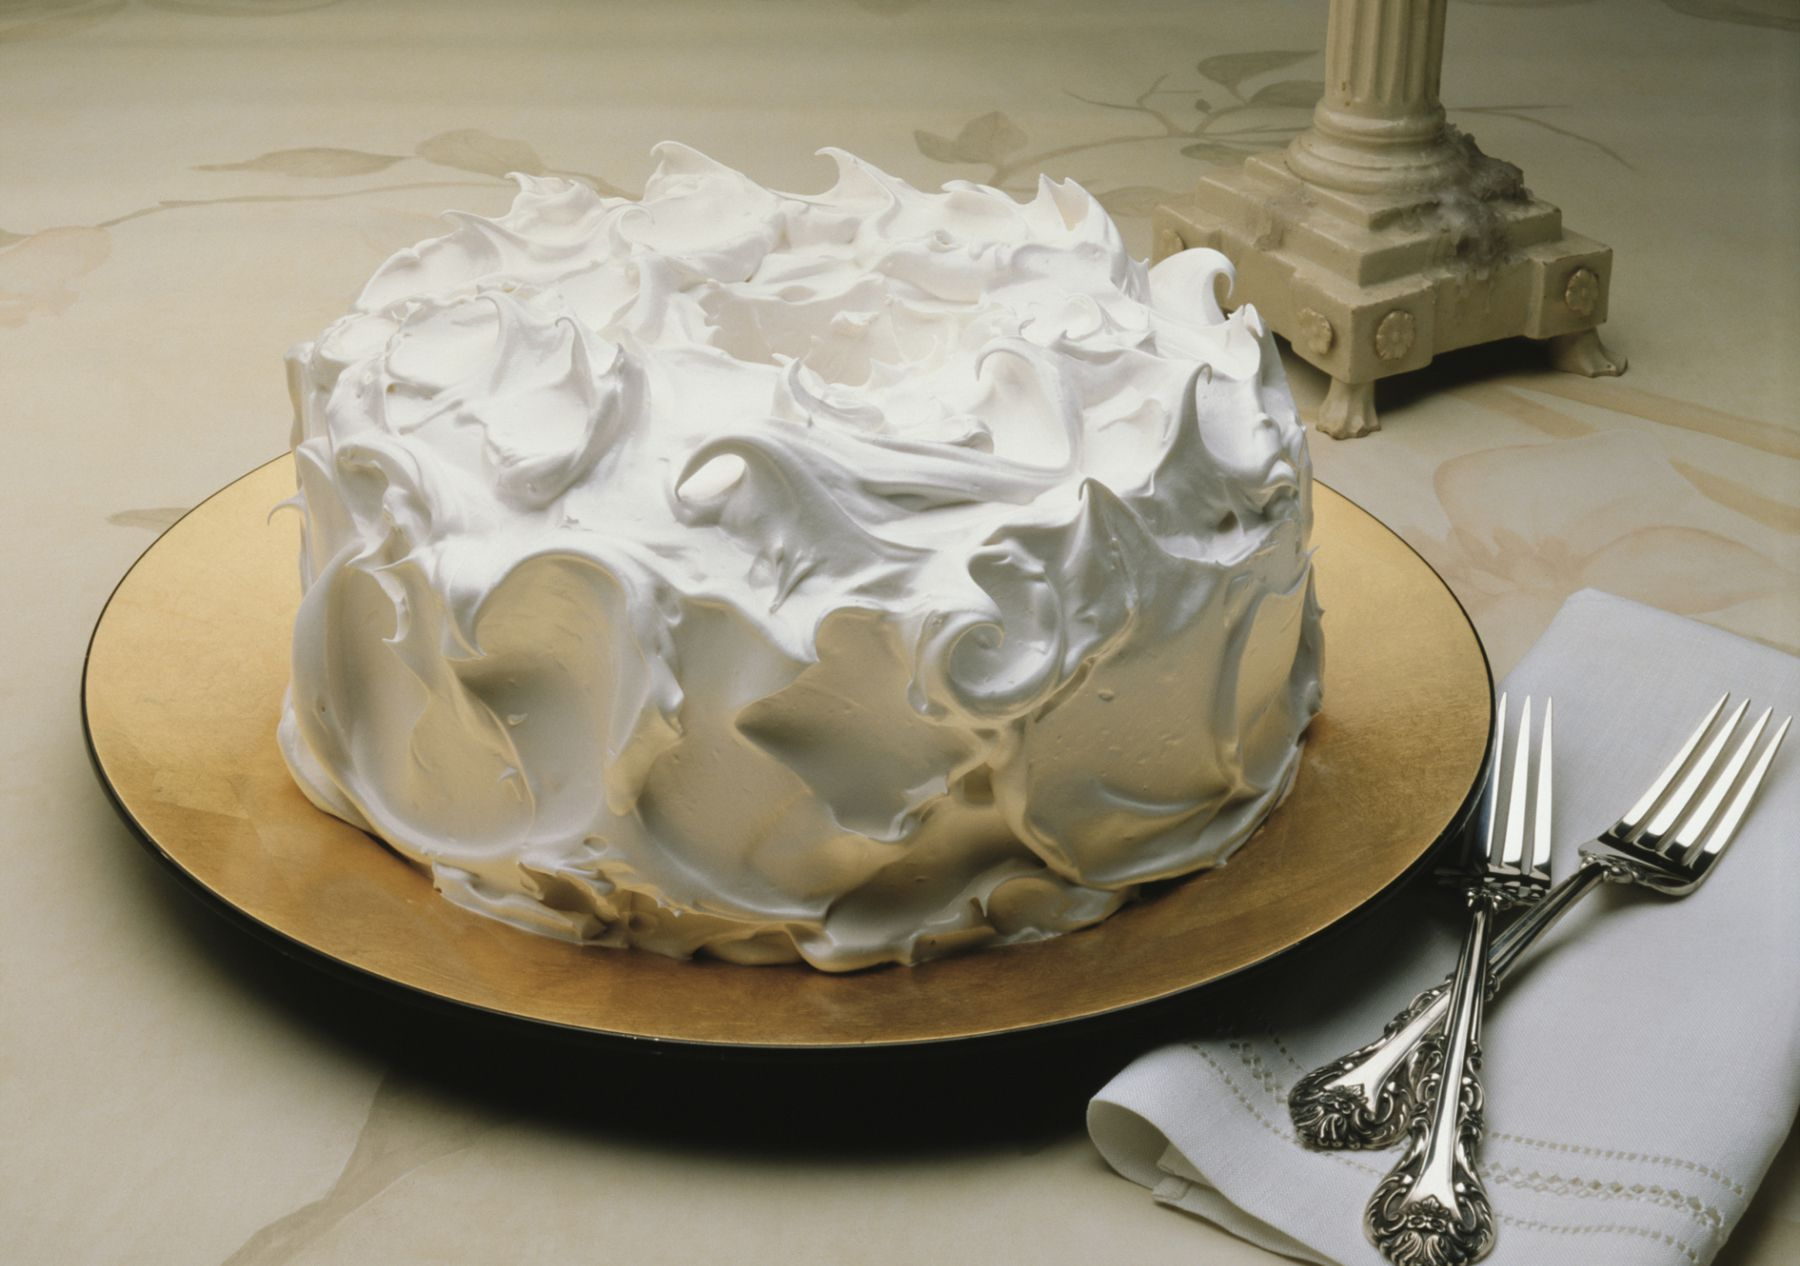 7 Minute Fluffy White Frosting Recipe